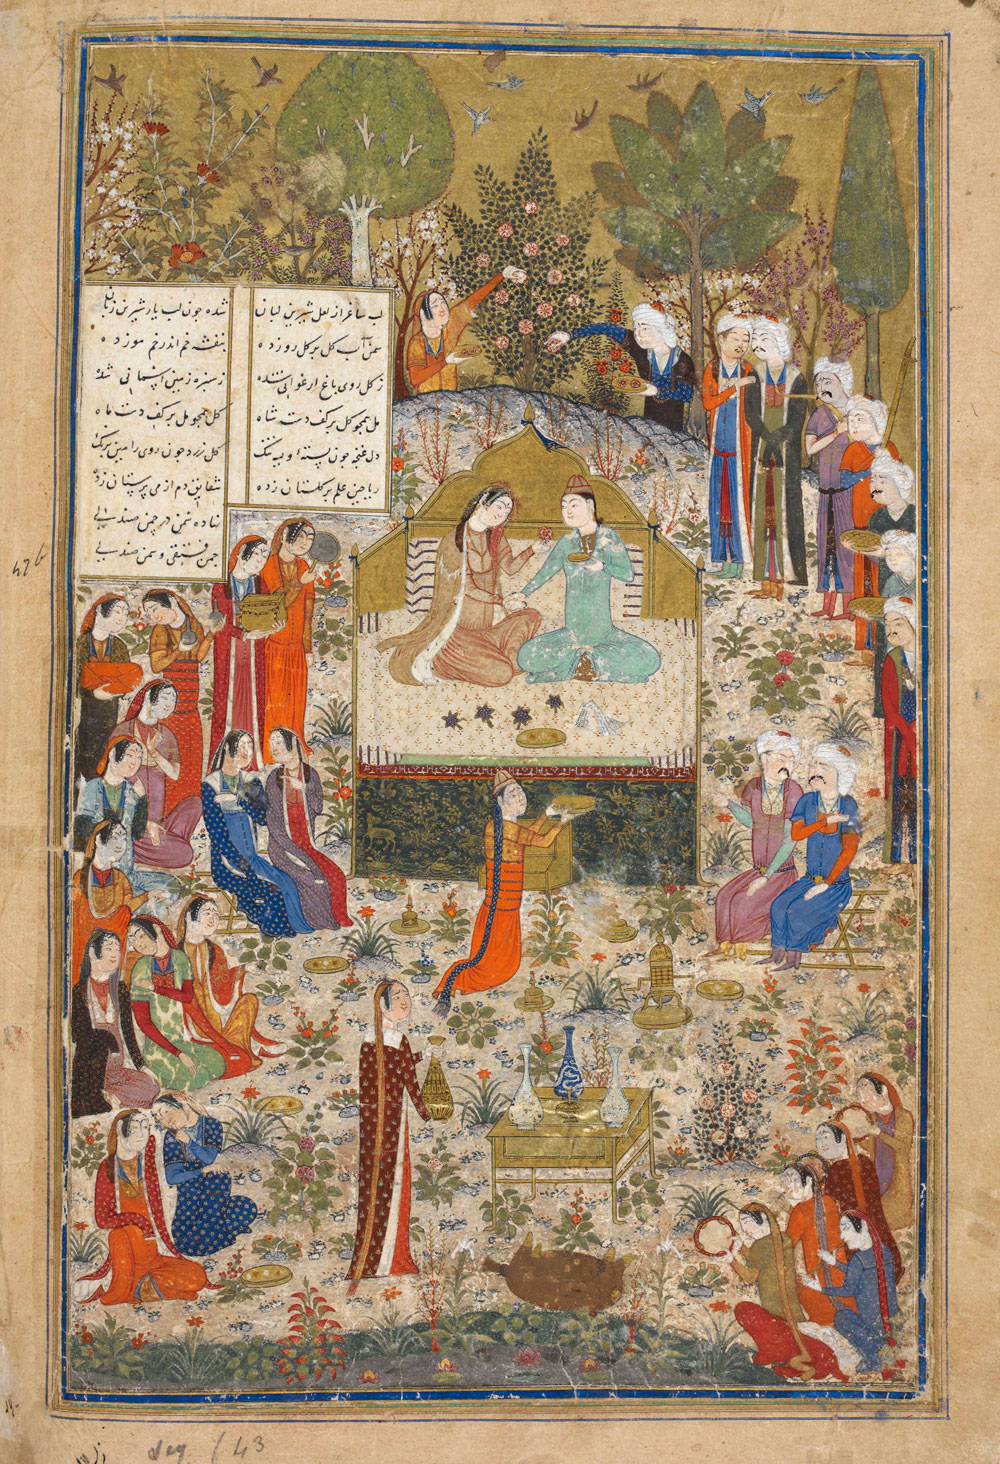 re2.-Courtauld-Court-and-Craft---Humay-and-Humayan-in-the-garden,-British-Library